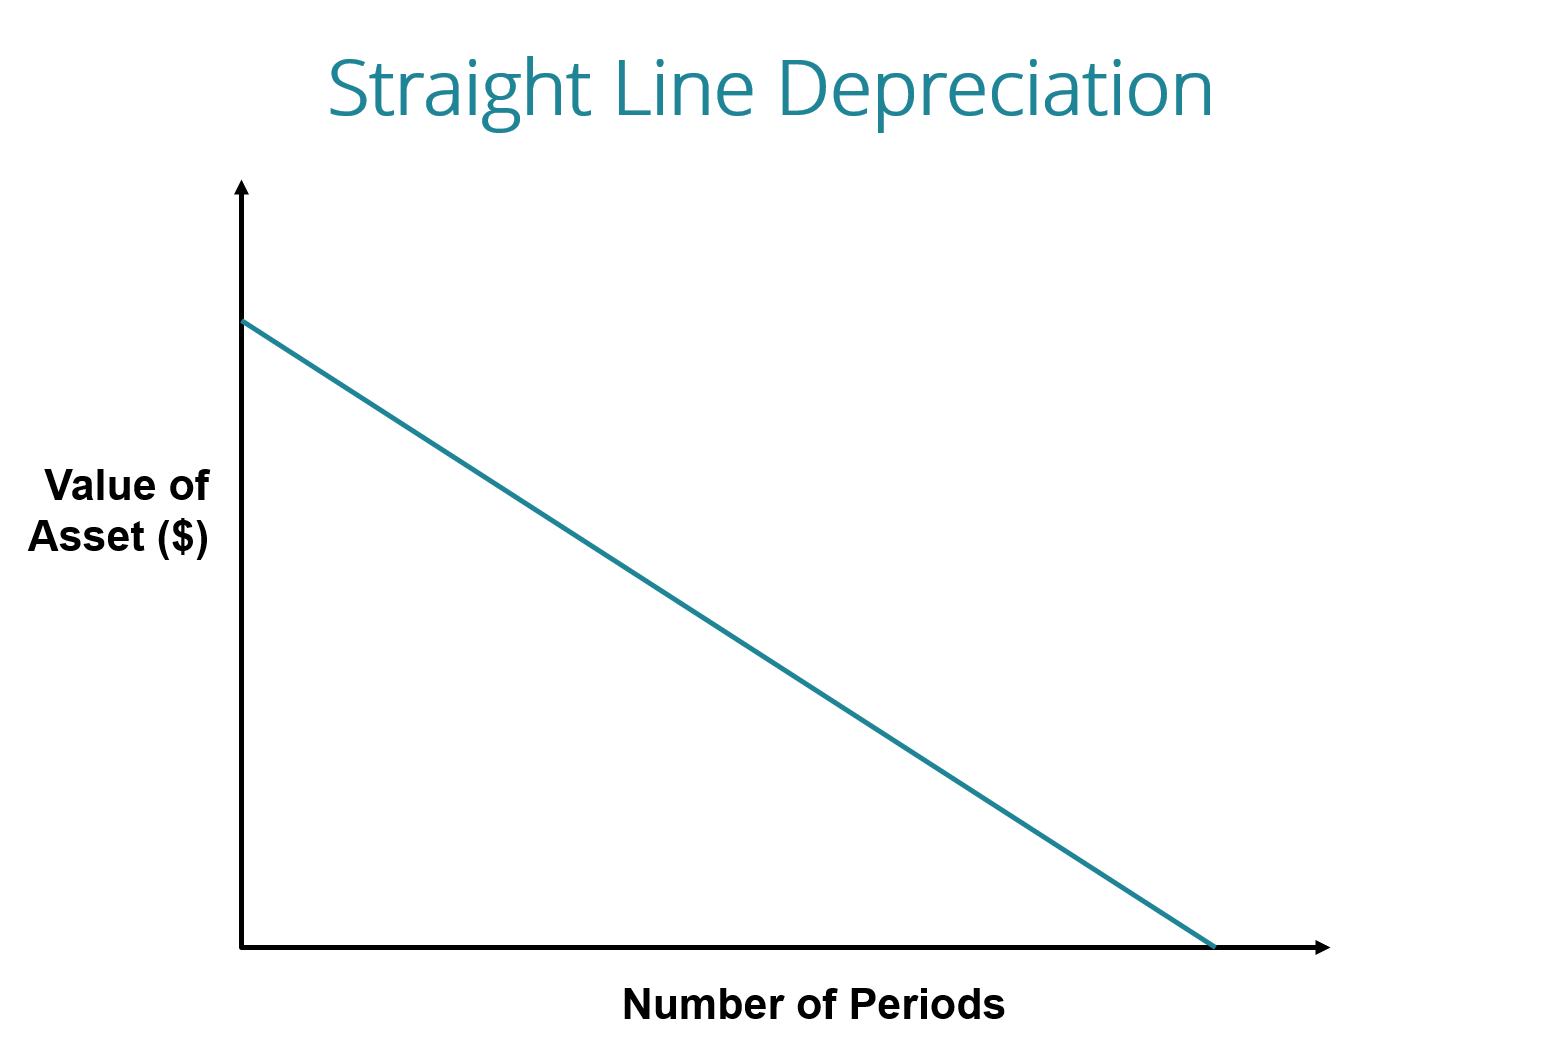 Straight Line Depreciation - Formula & Guide to Calculate